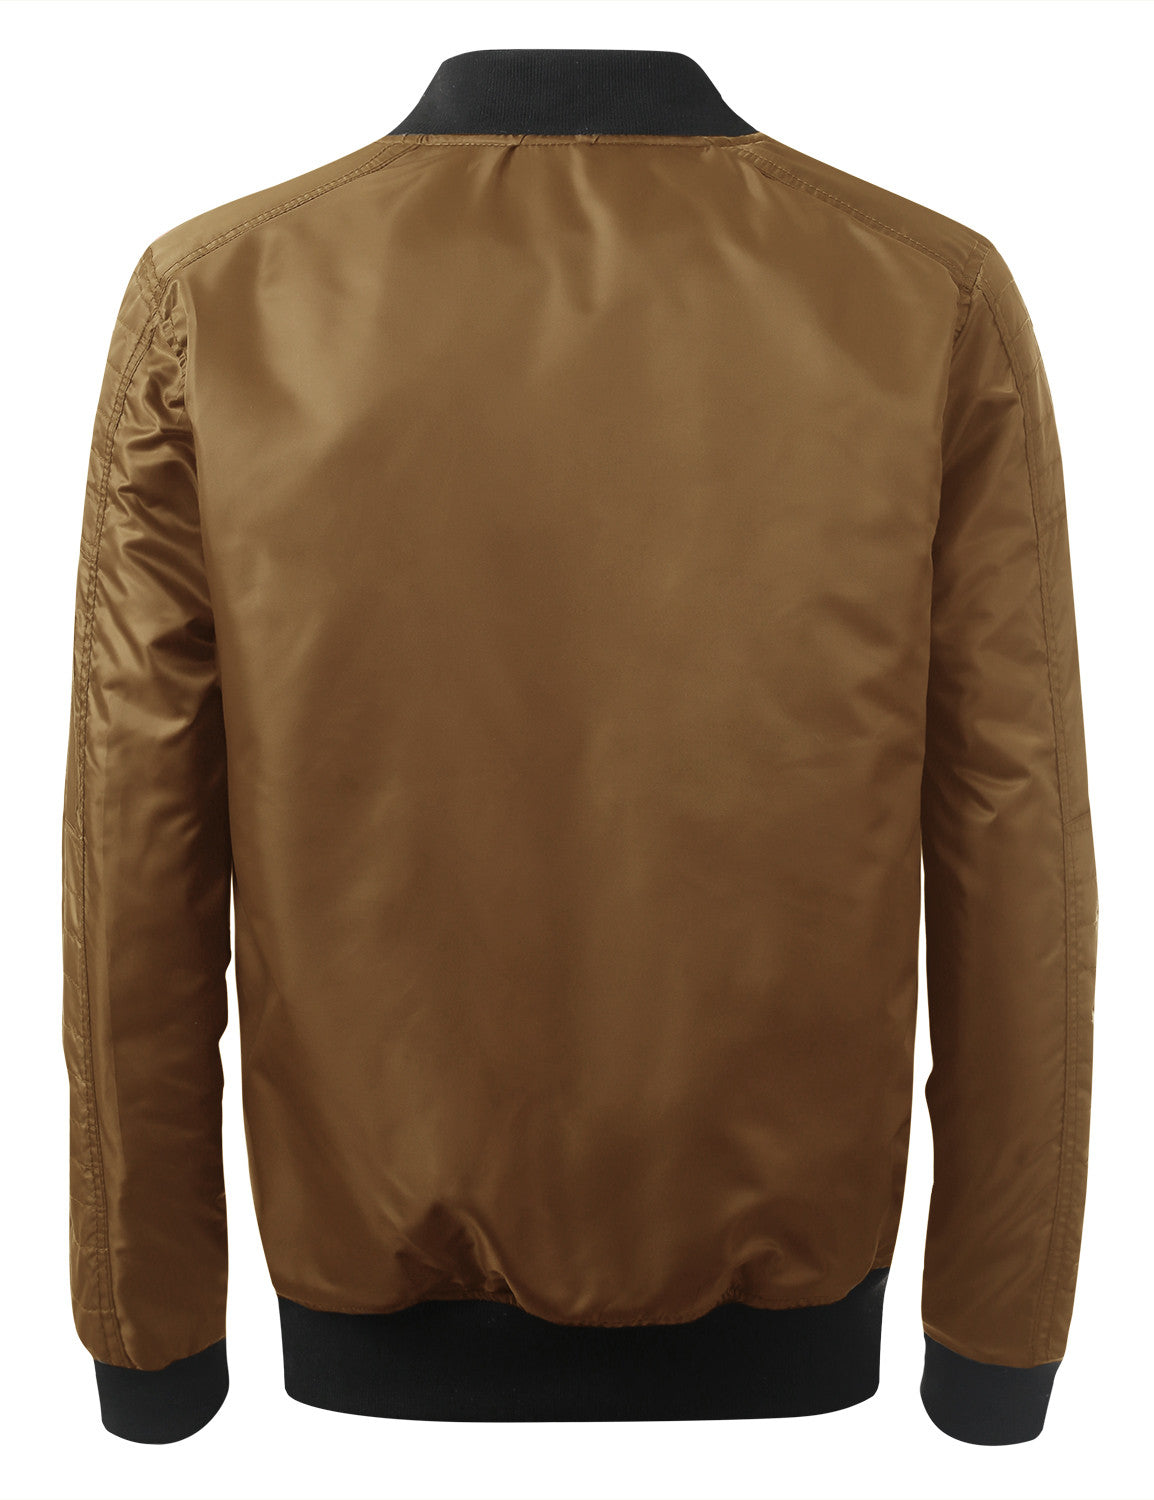 CARAMEL Basic Bomber Flight Jacket w/ Zippers - URBANCREWS